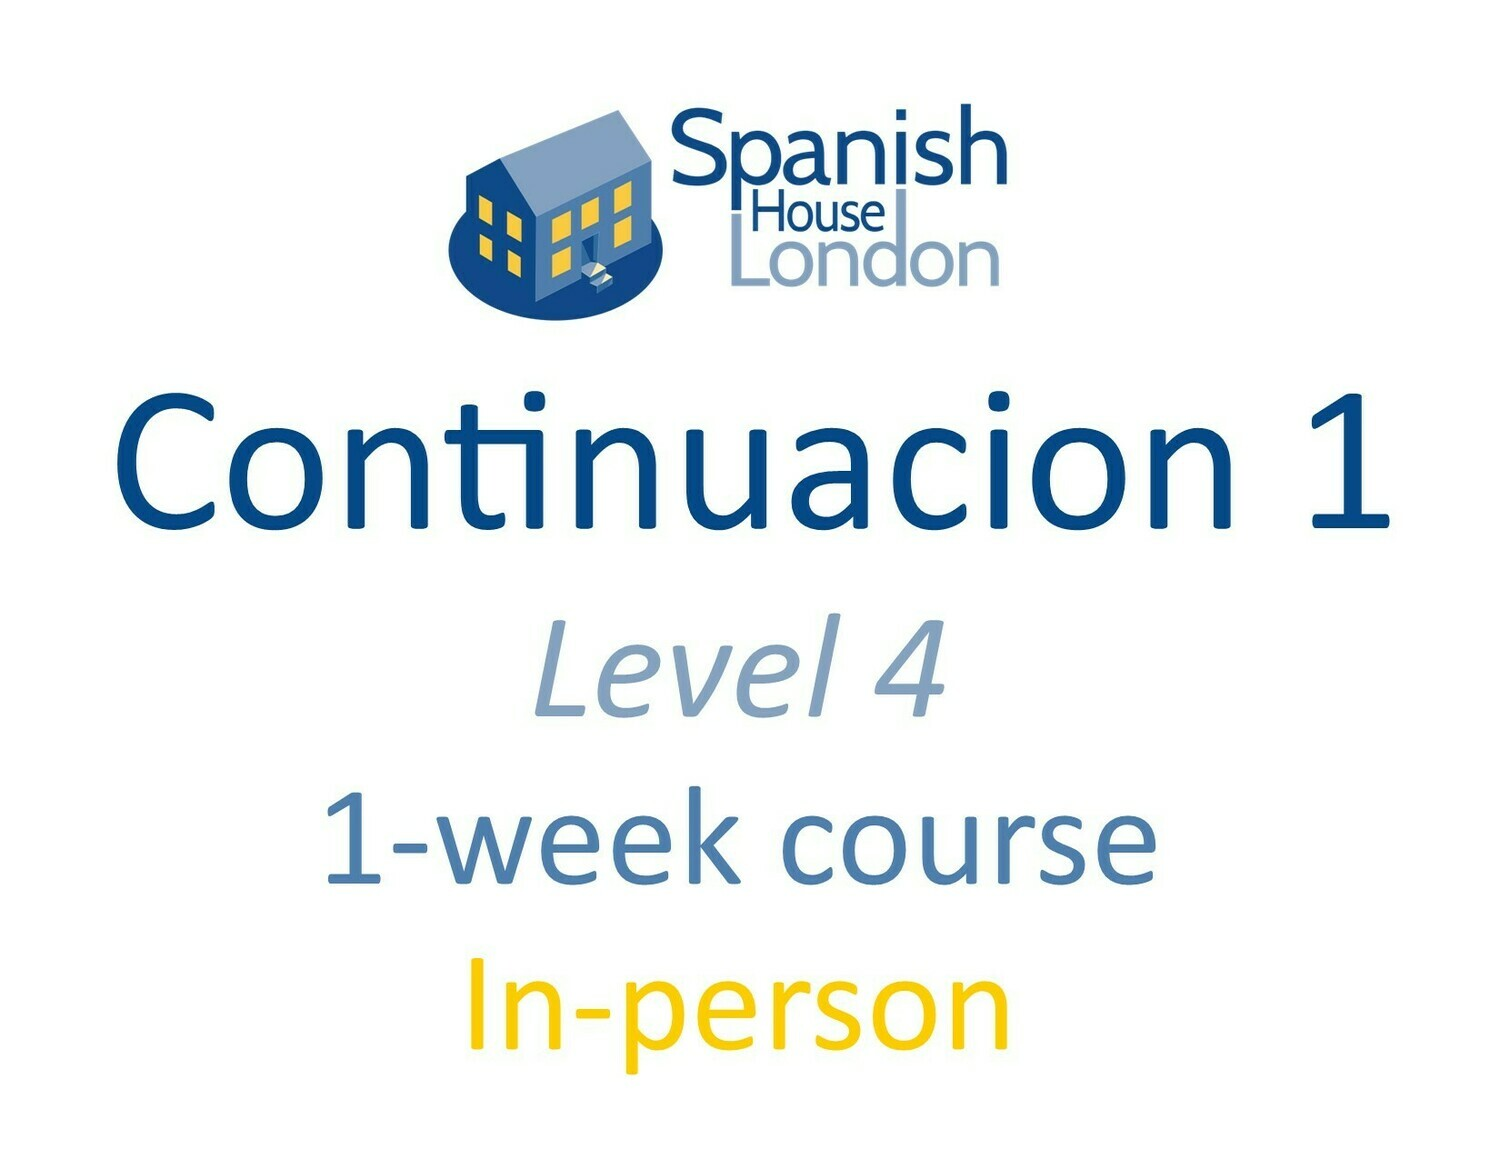 Continuacion 1 Course starting on 24th November at 6pm in Clapham North